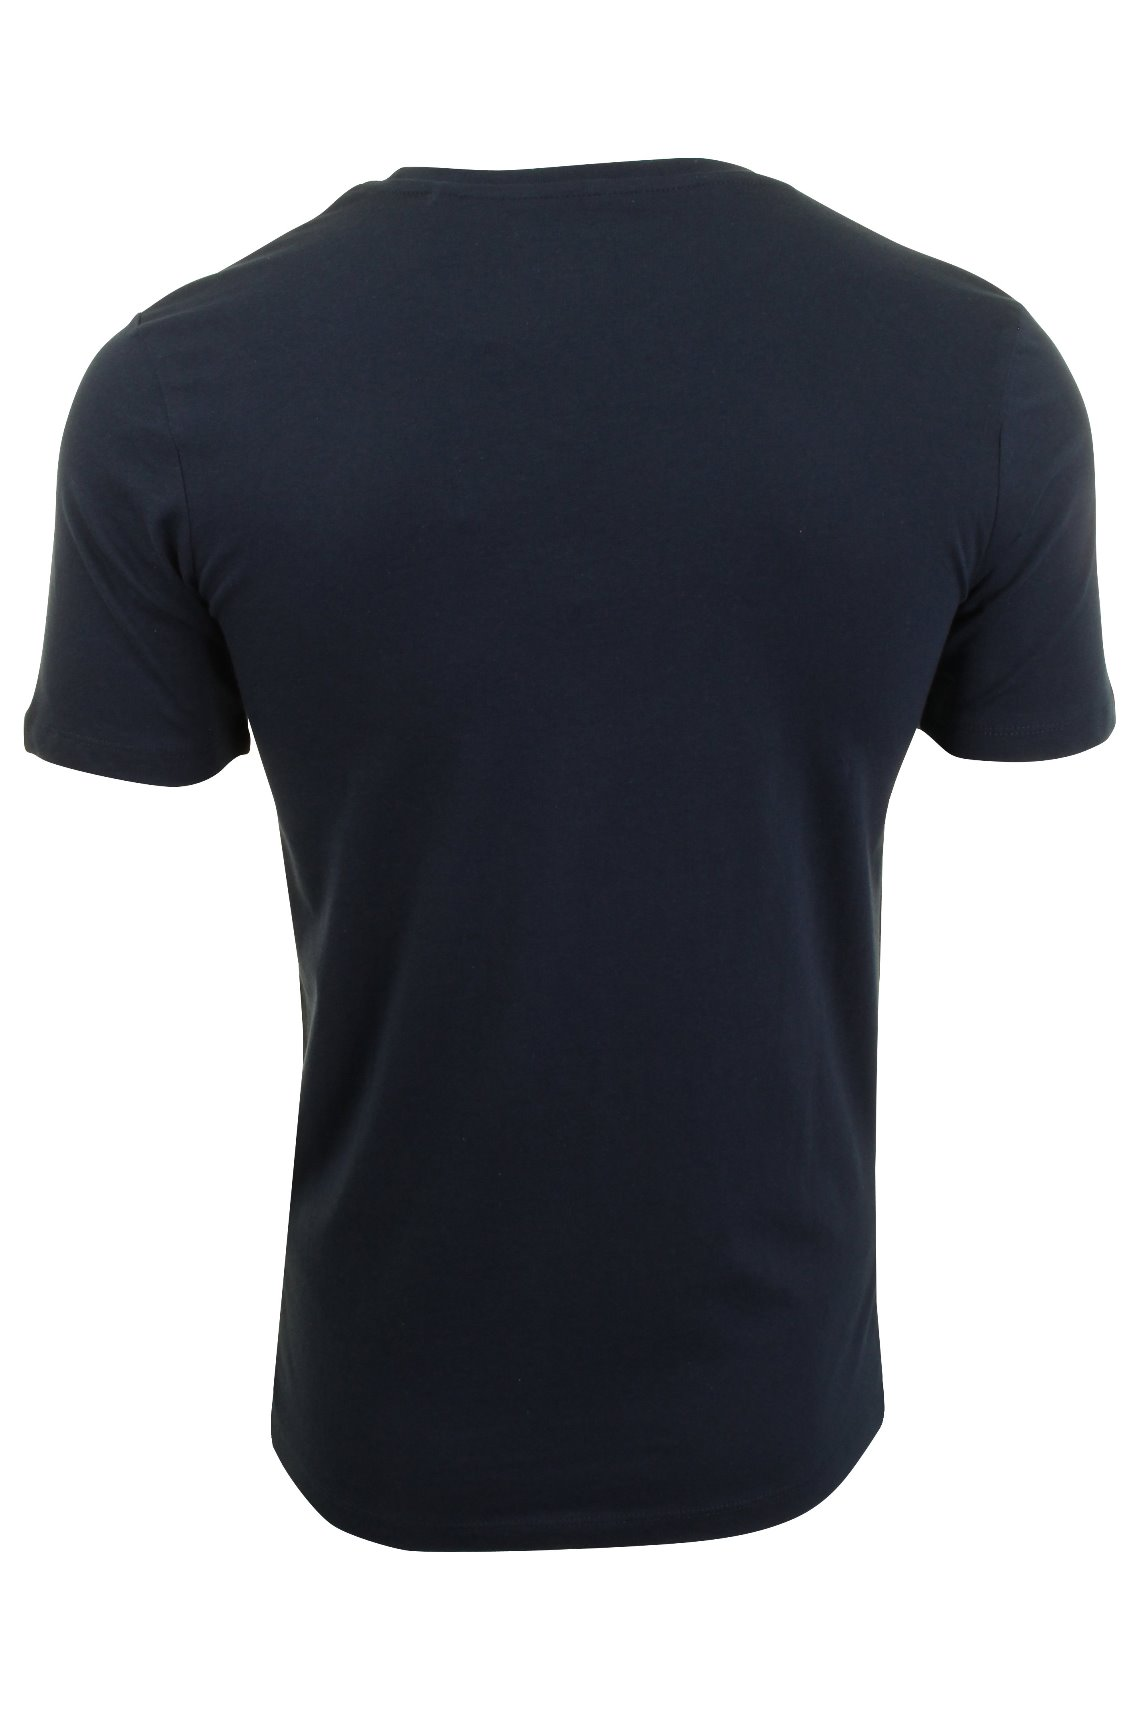 Jack-amp-Jones-Mens-Short-Sleeved-T-Shirt-039-JJEJEANS-039 thumbnail 15